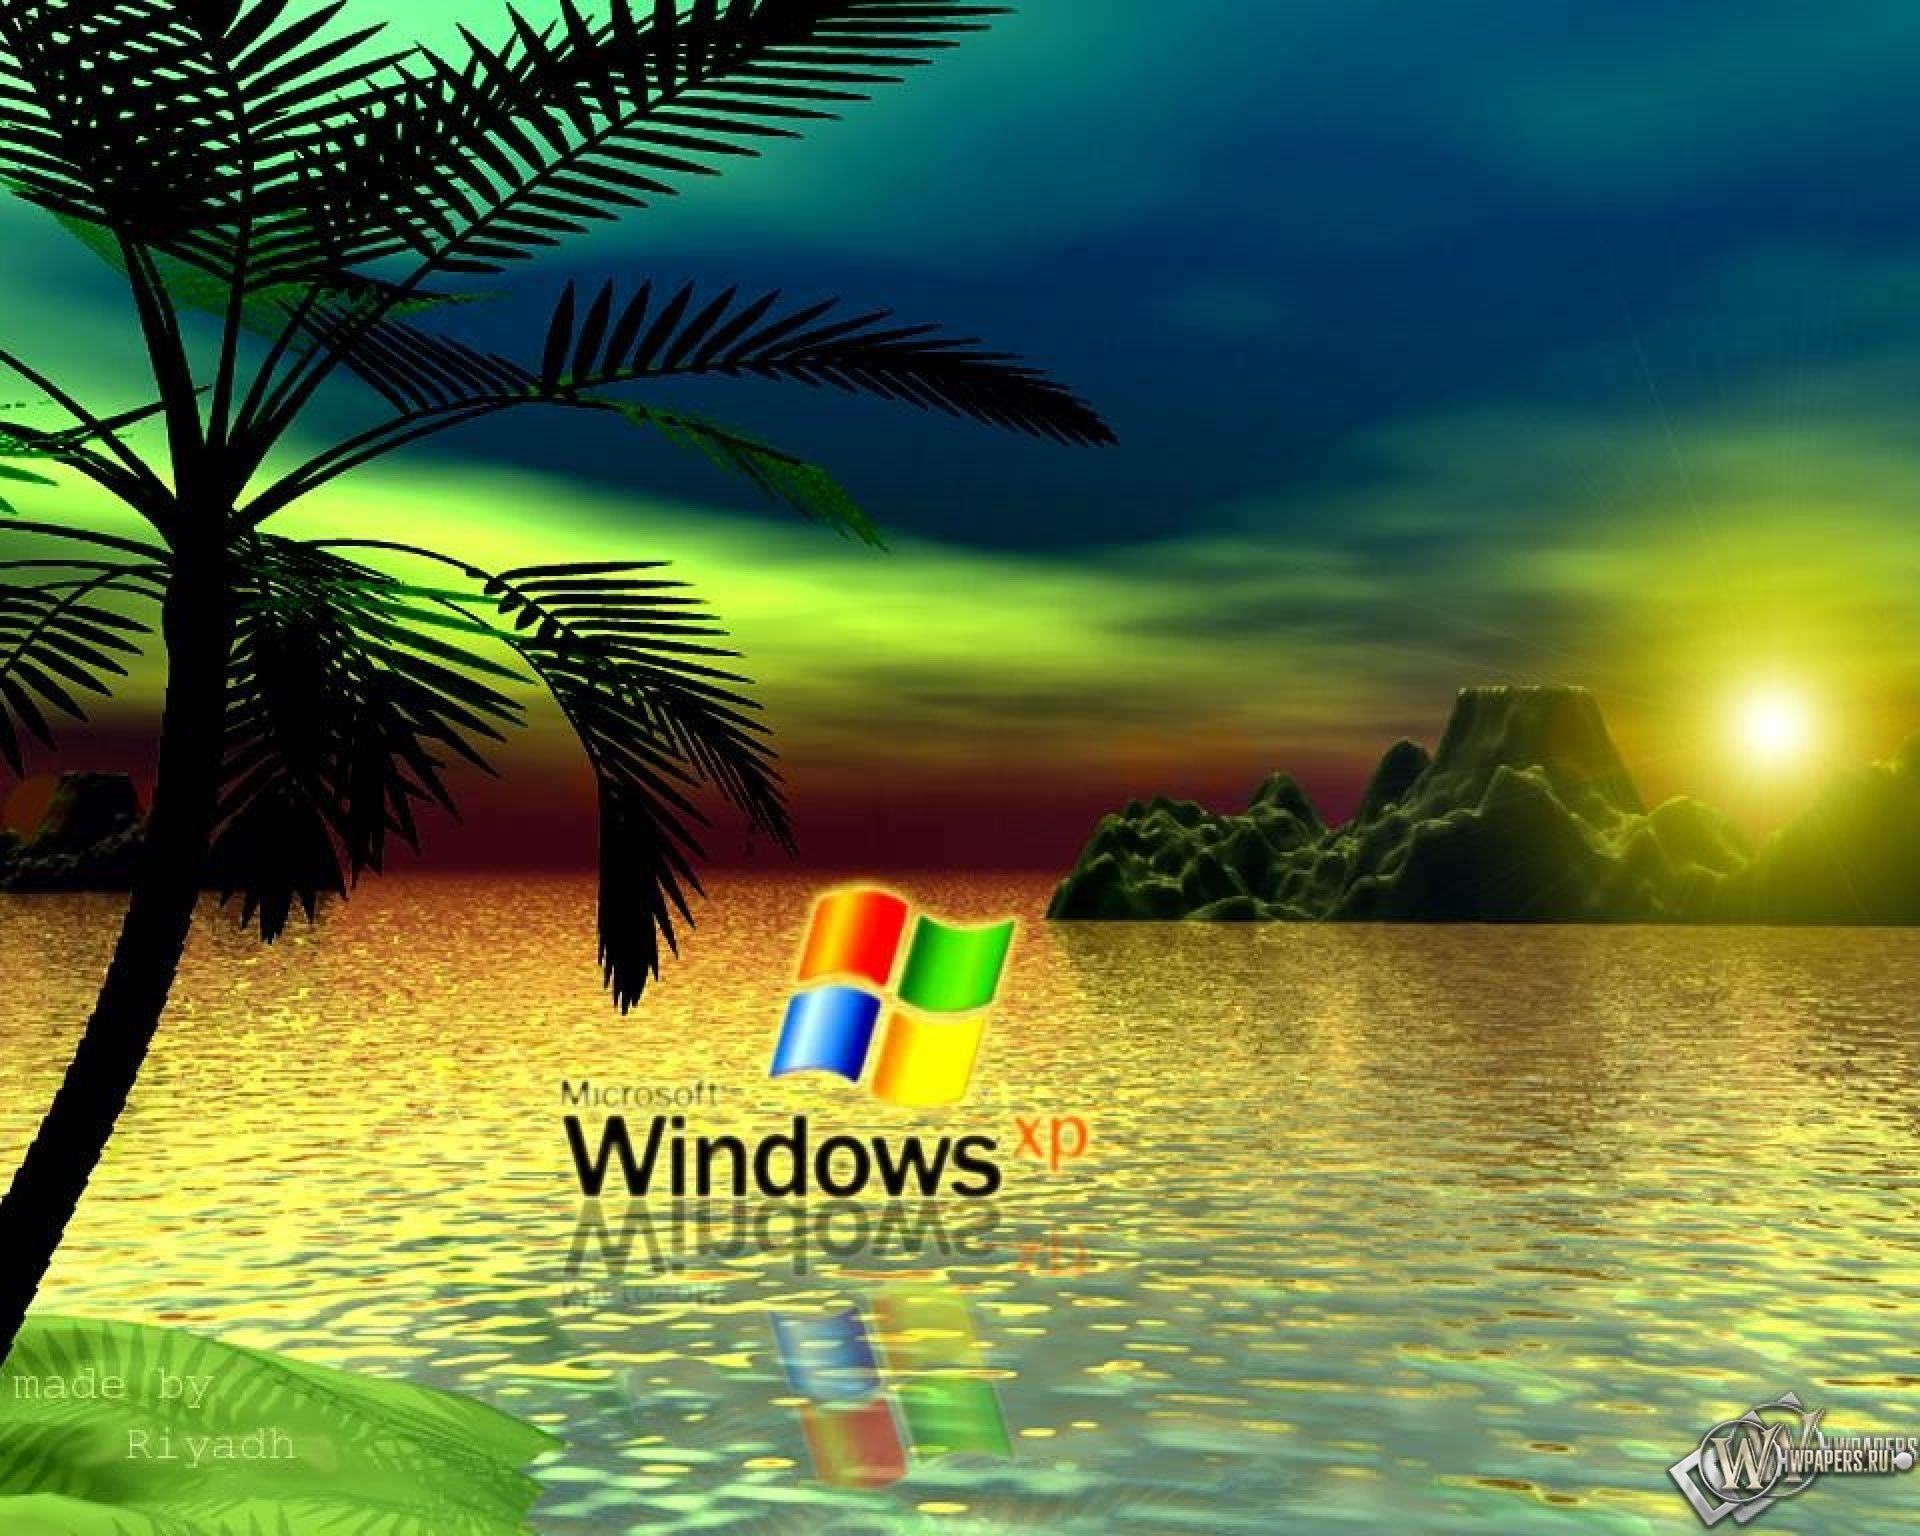 Windows Xp Puter Sfondi Hd Wallpaper Hd Sfondi Per Il Desktop Hd